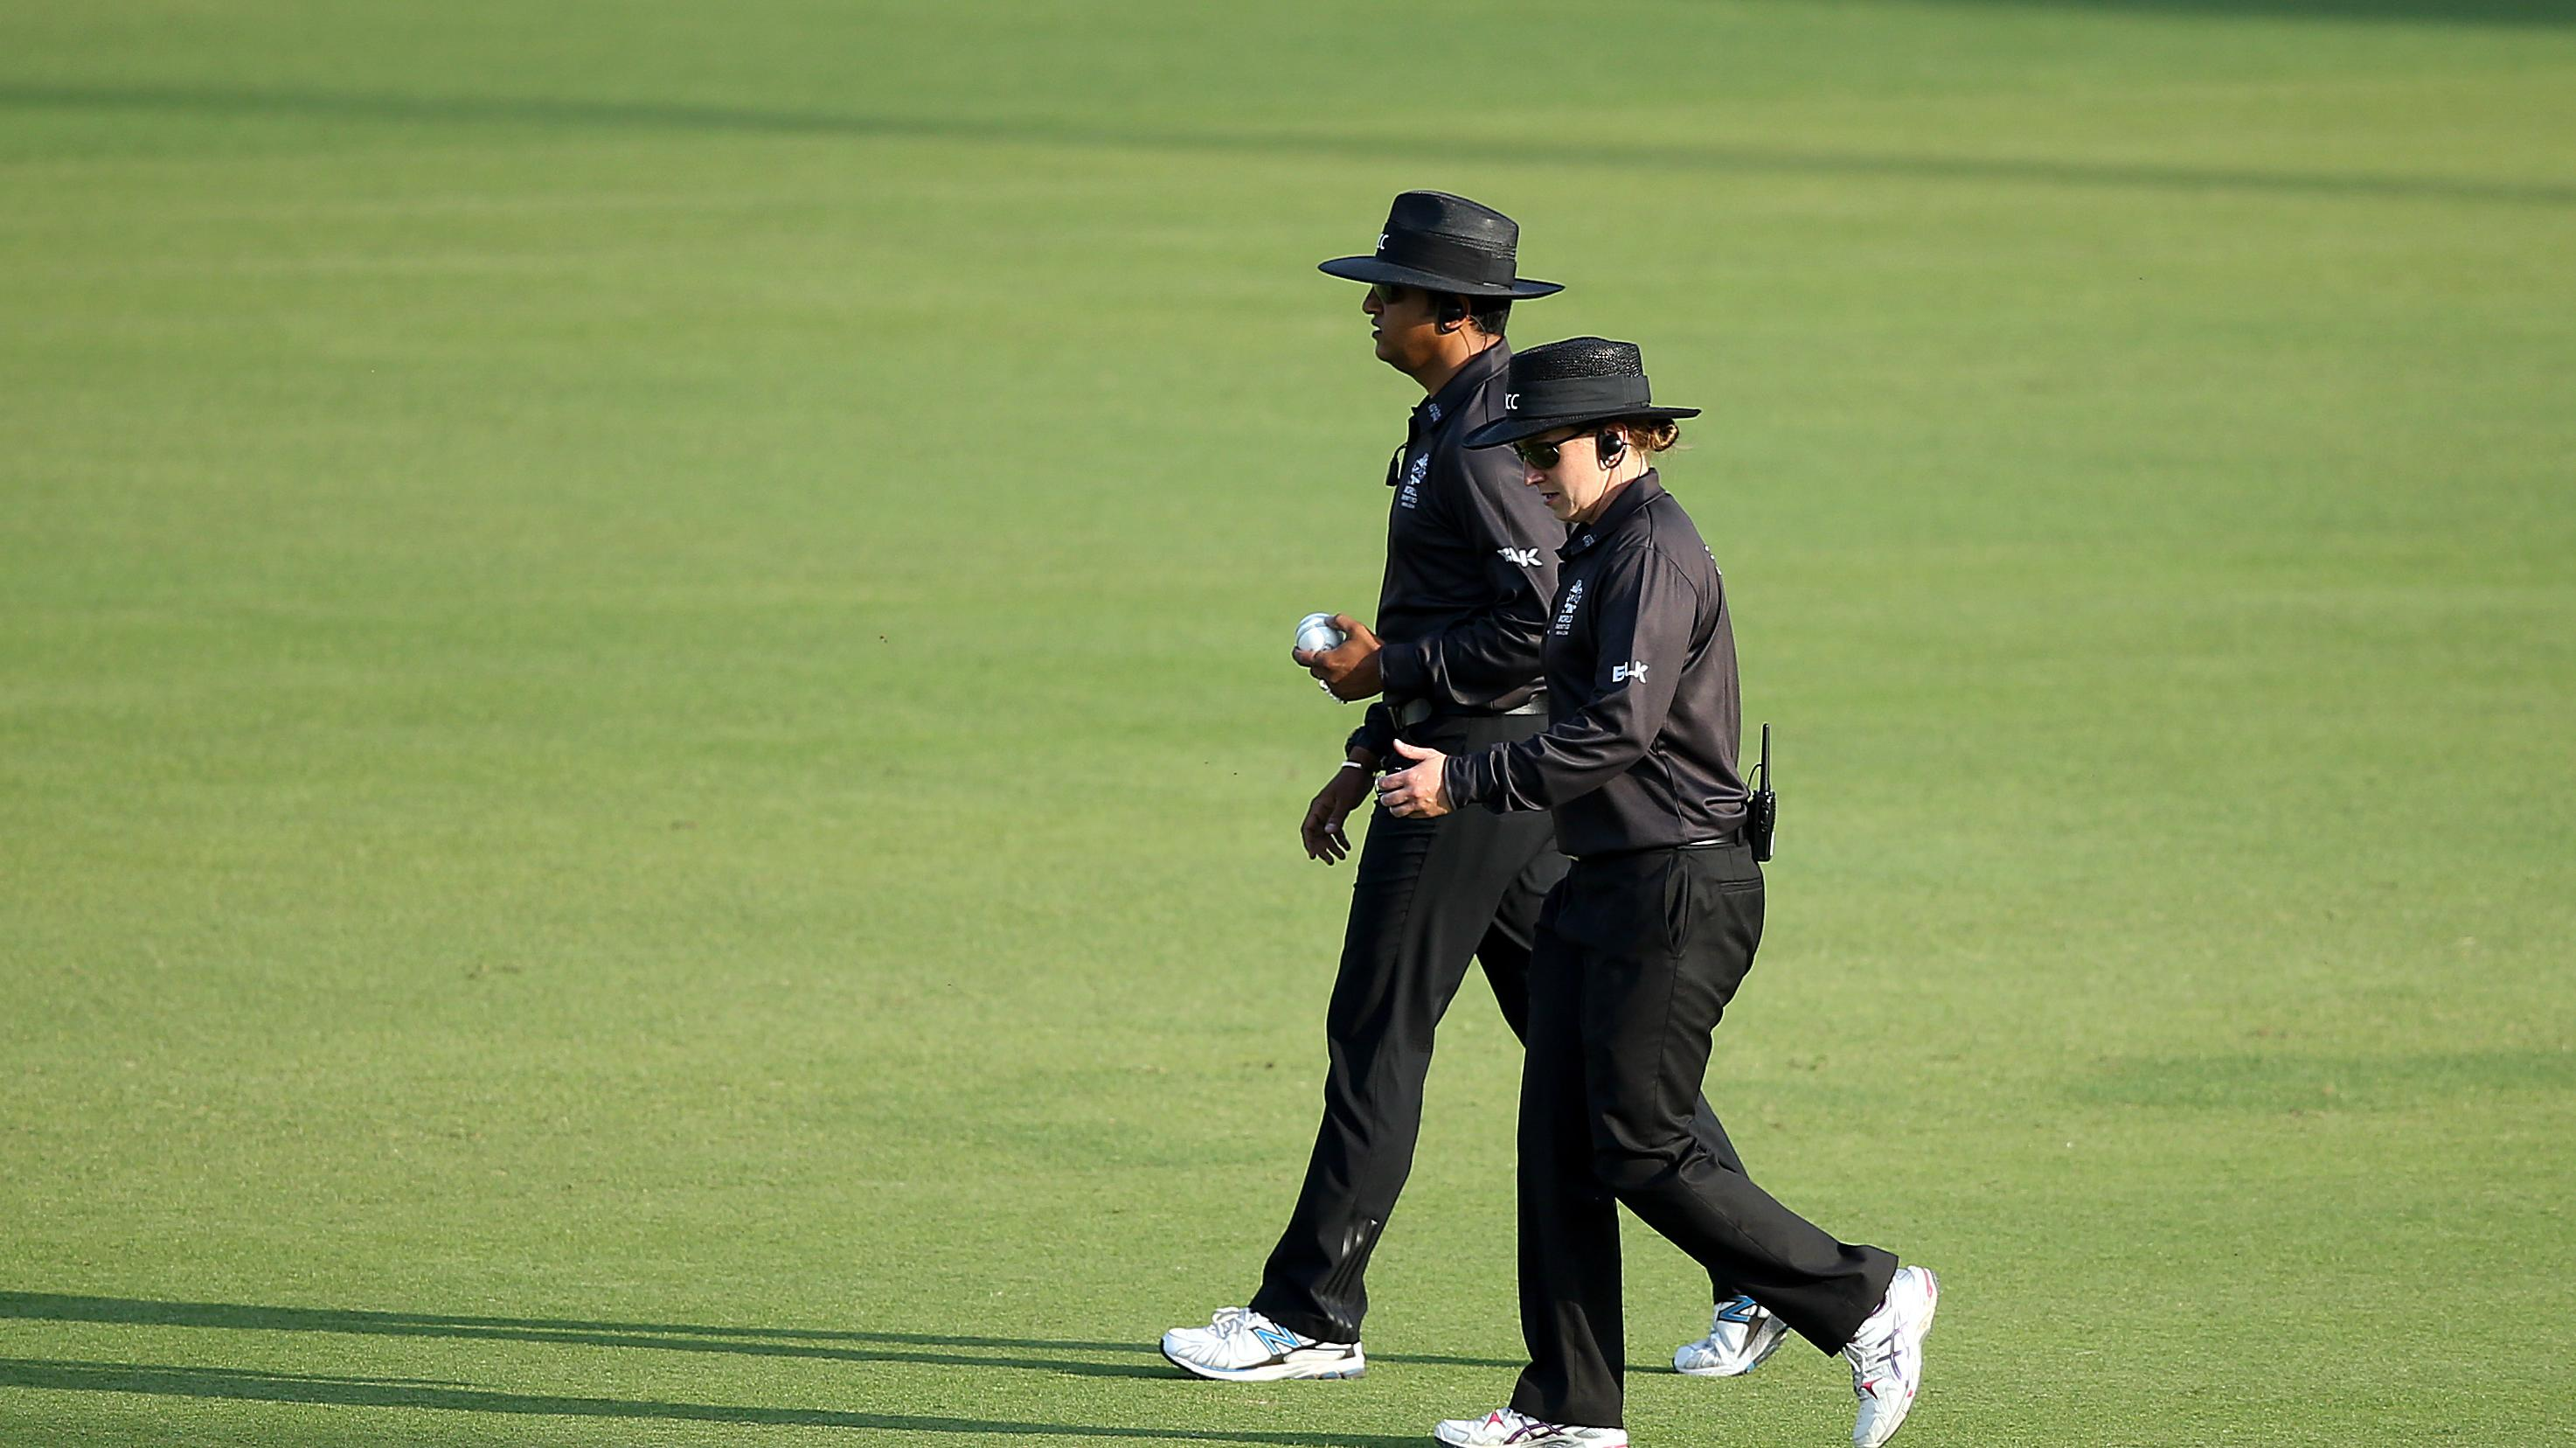 Icc Announces Umpire And Referee Appointments For Icc